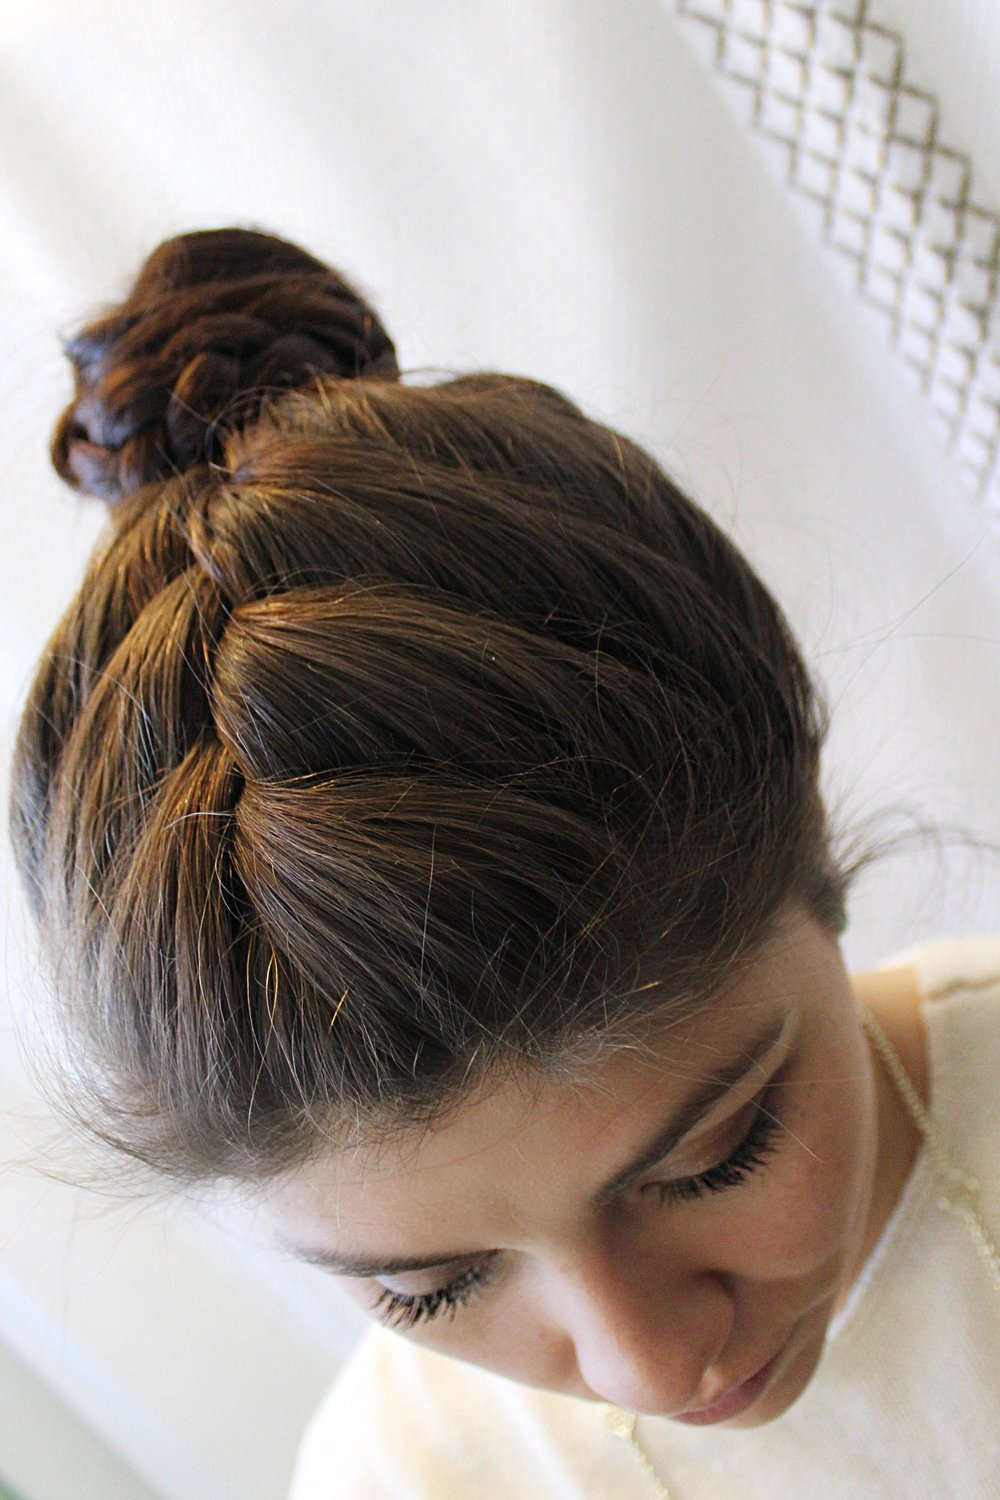 braided-bun-simple-hair-tutorial.jpg